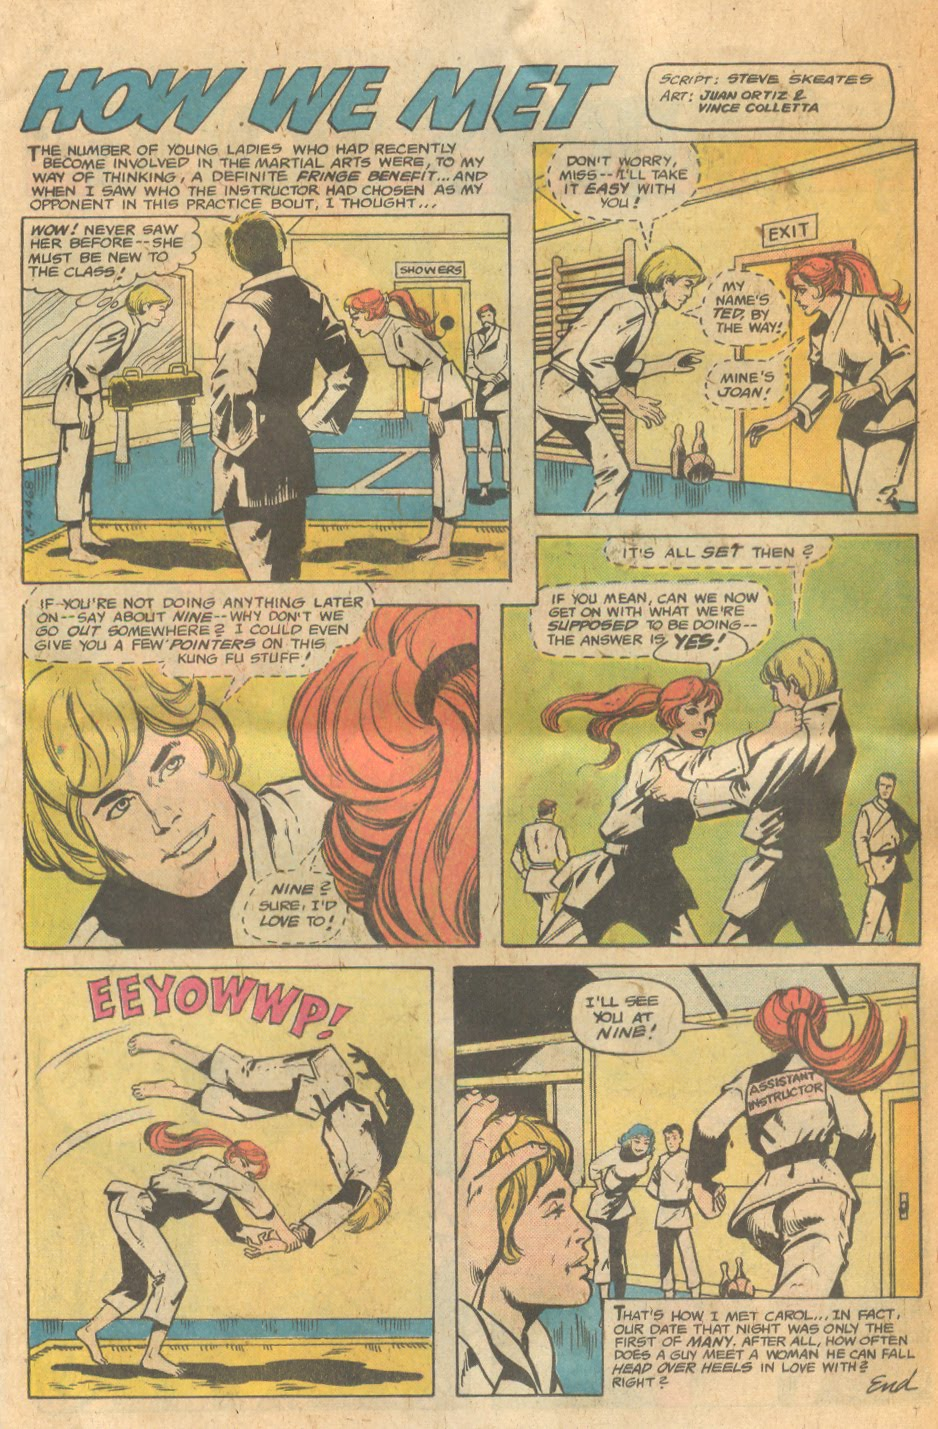 Stories of couples falling in love first time meeting romance love comics